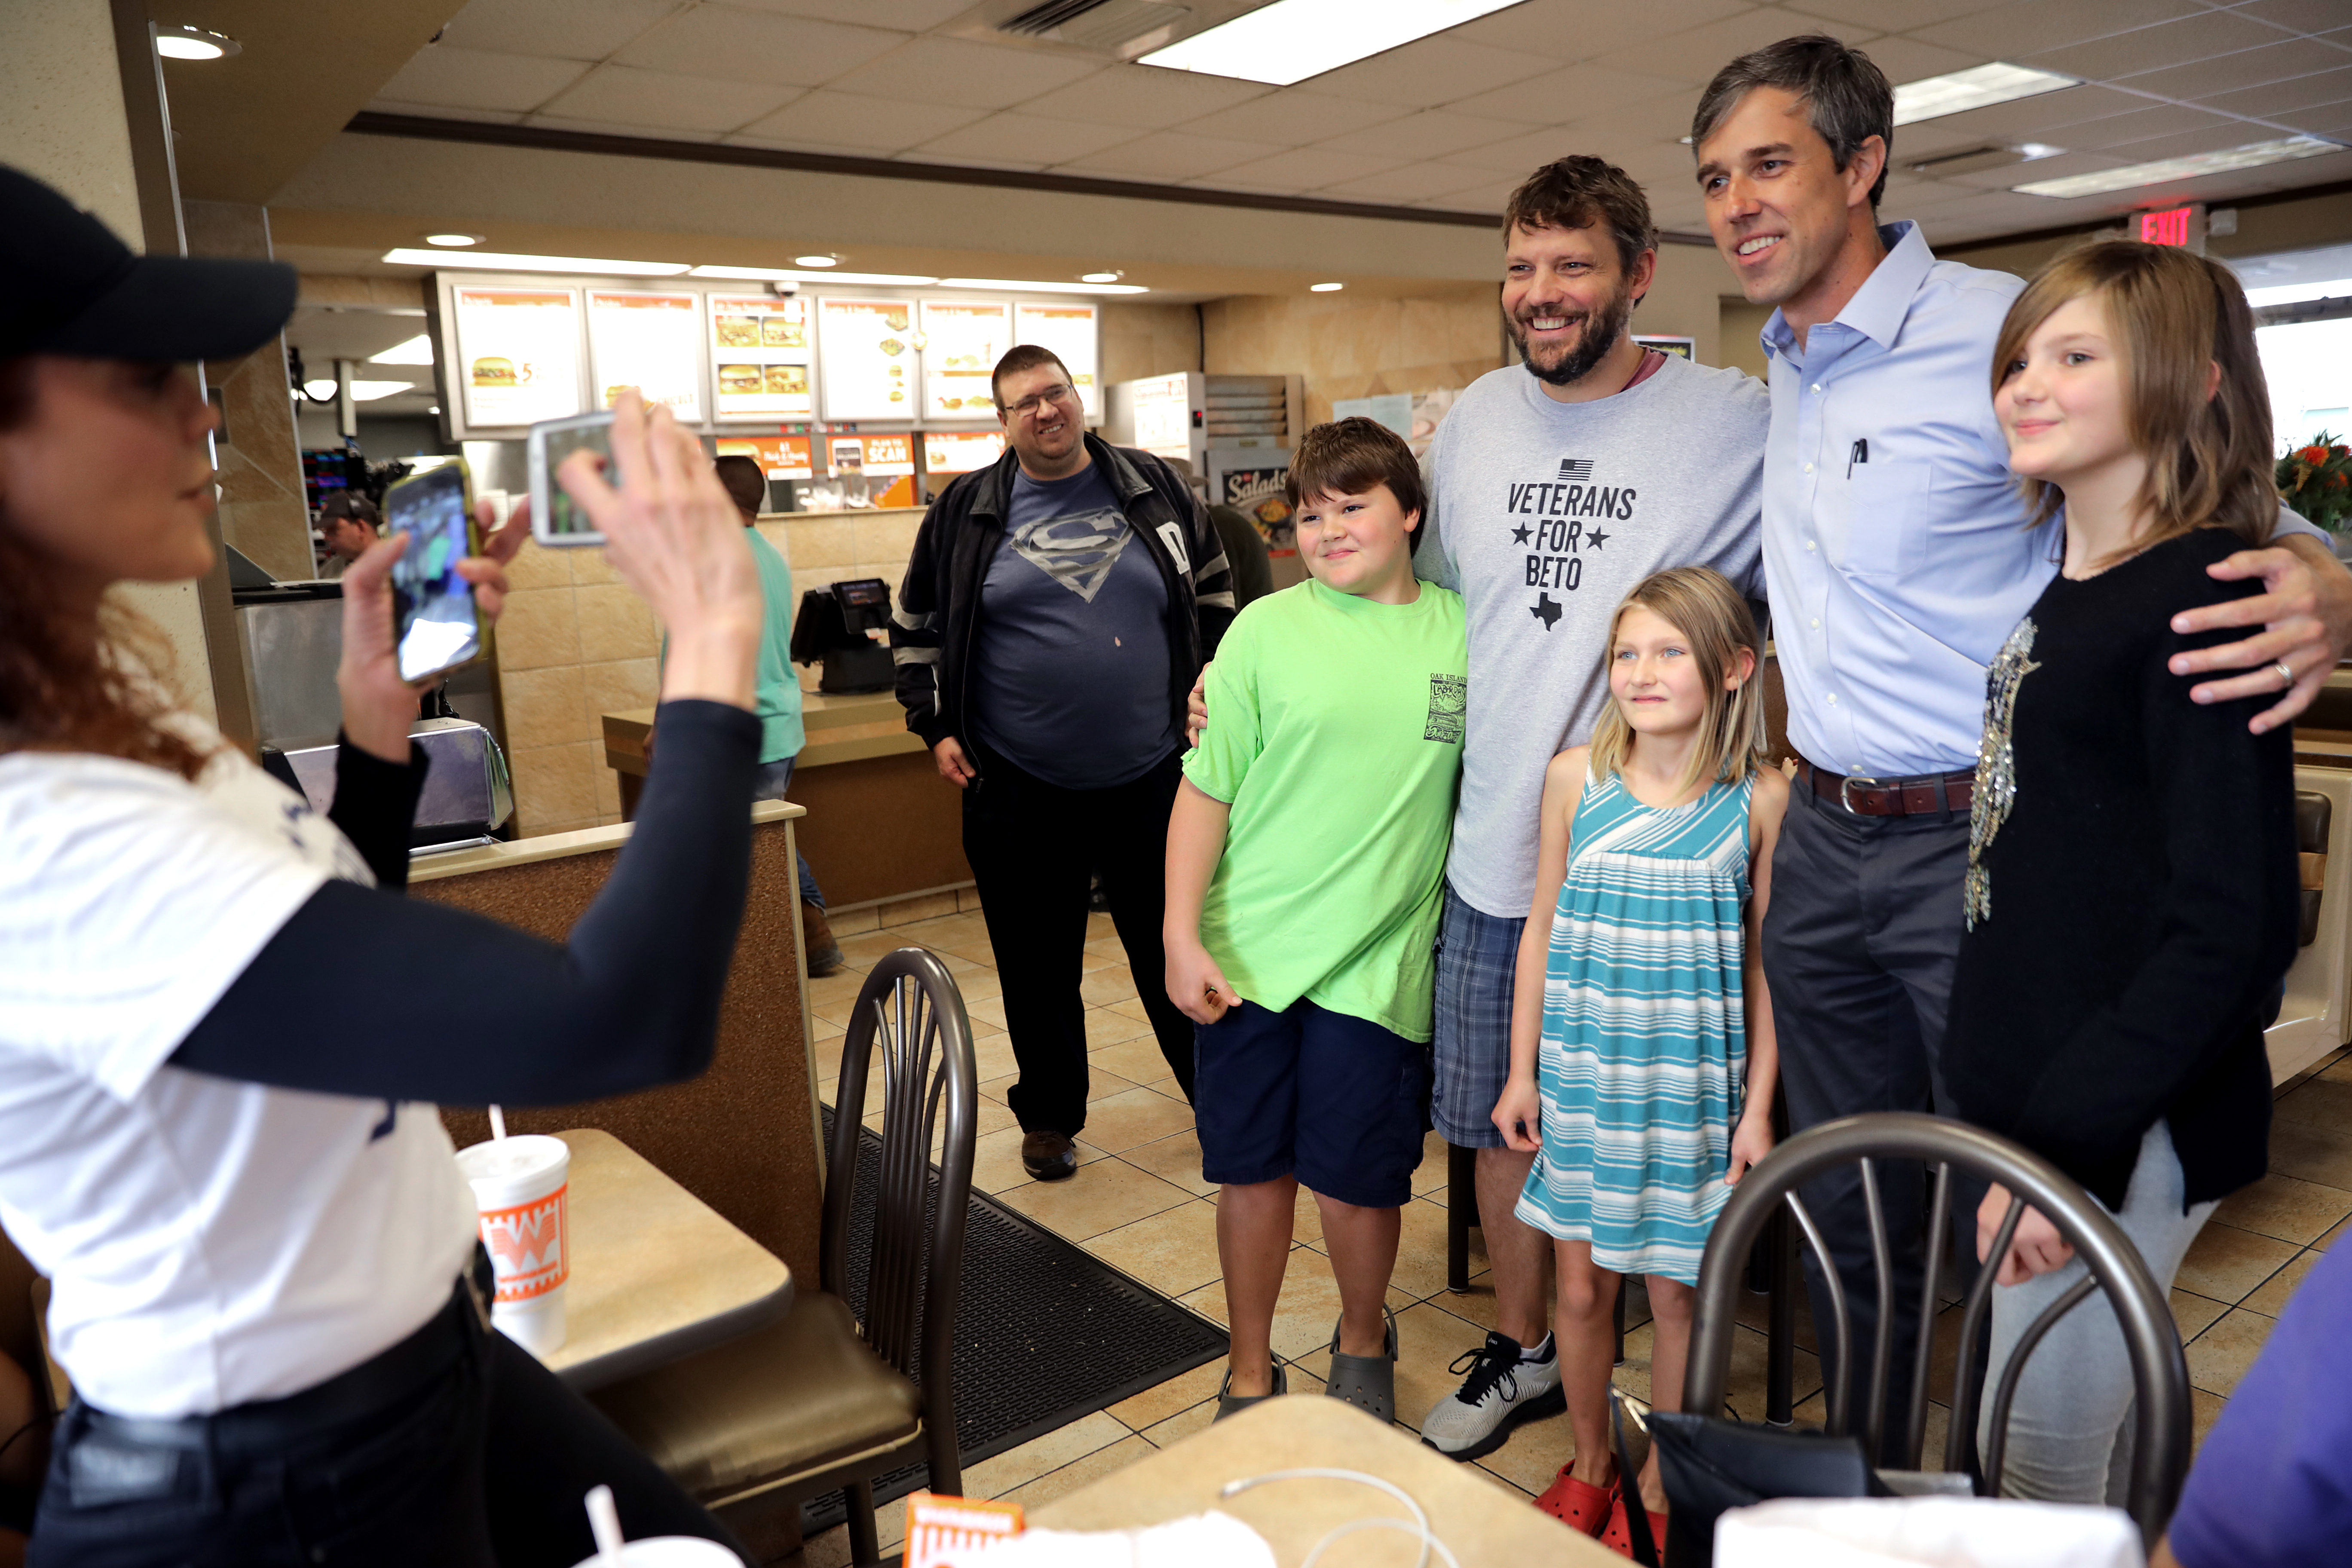 Senate candidate Rep. Beto O'Rourke poses for a photograph with supporters while eating lunch with his family and campaign staff at a Whataburger (Chip Somodevilla/Getty Images)